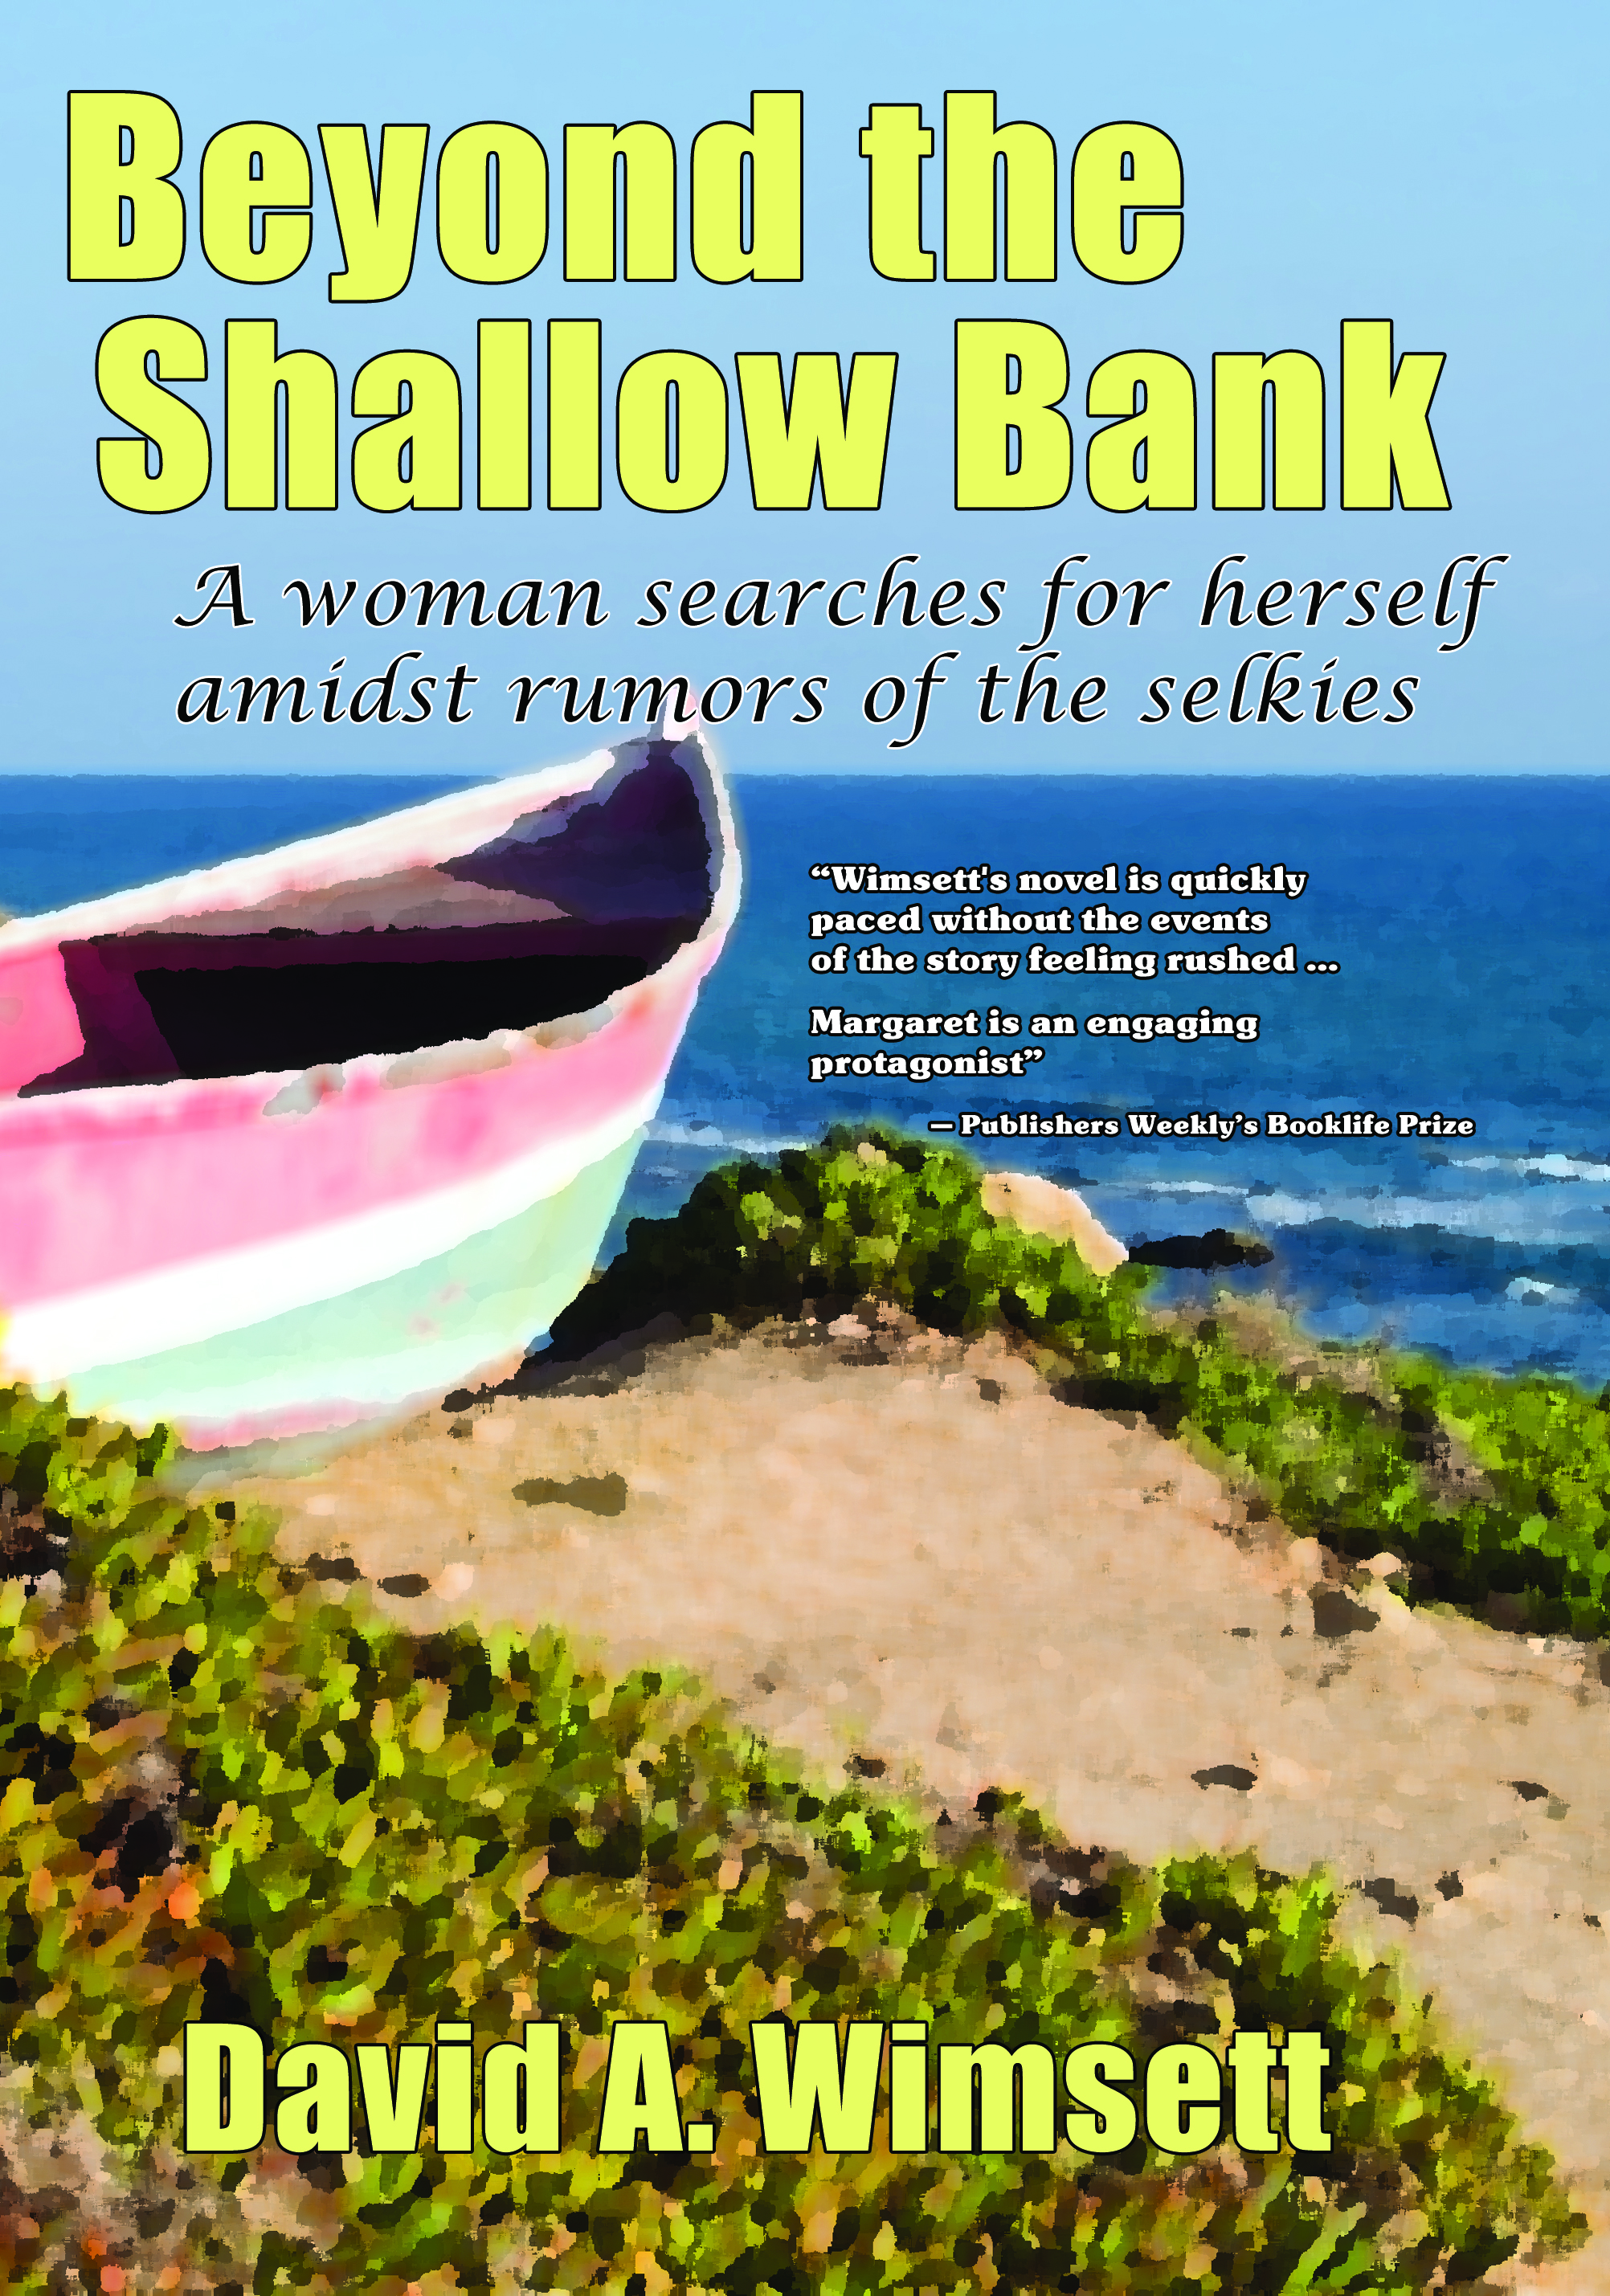 Beyond the Shallow Babnk: A novel of a woman searching for herself